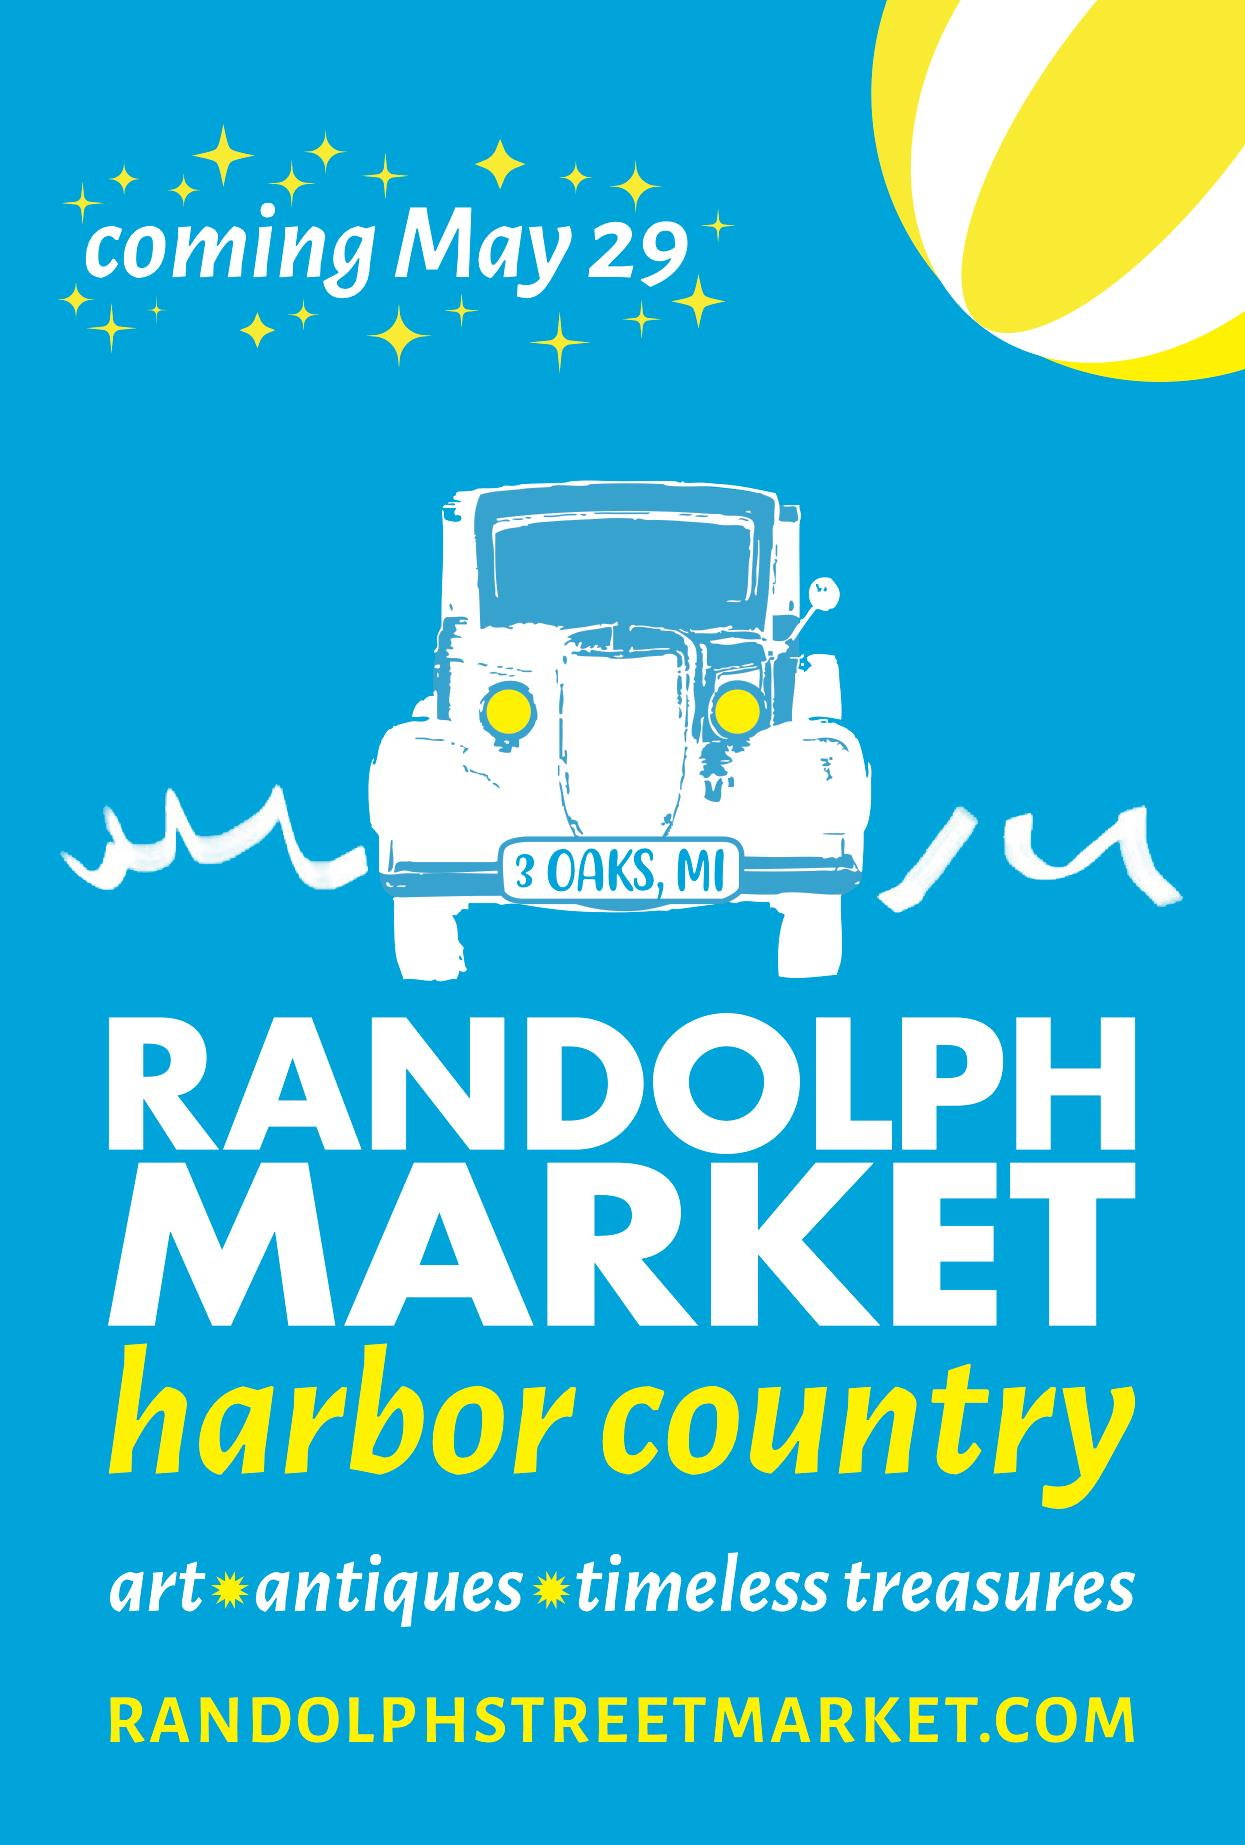 Experience Randolph Market Sustainable Vintage Luxury in Charming Three Oaks, Michigan